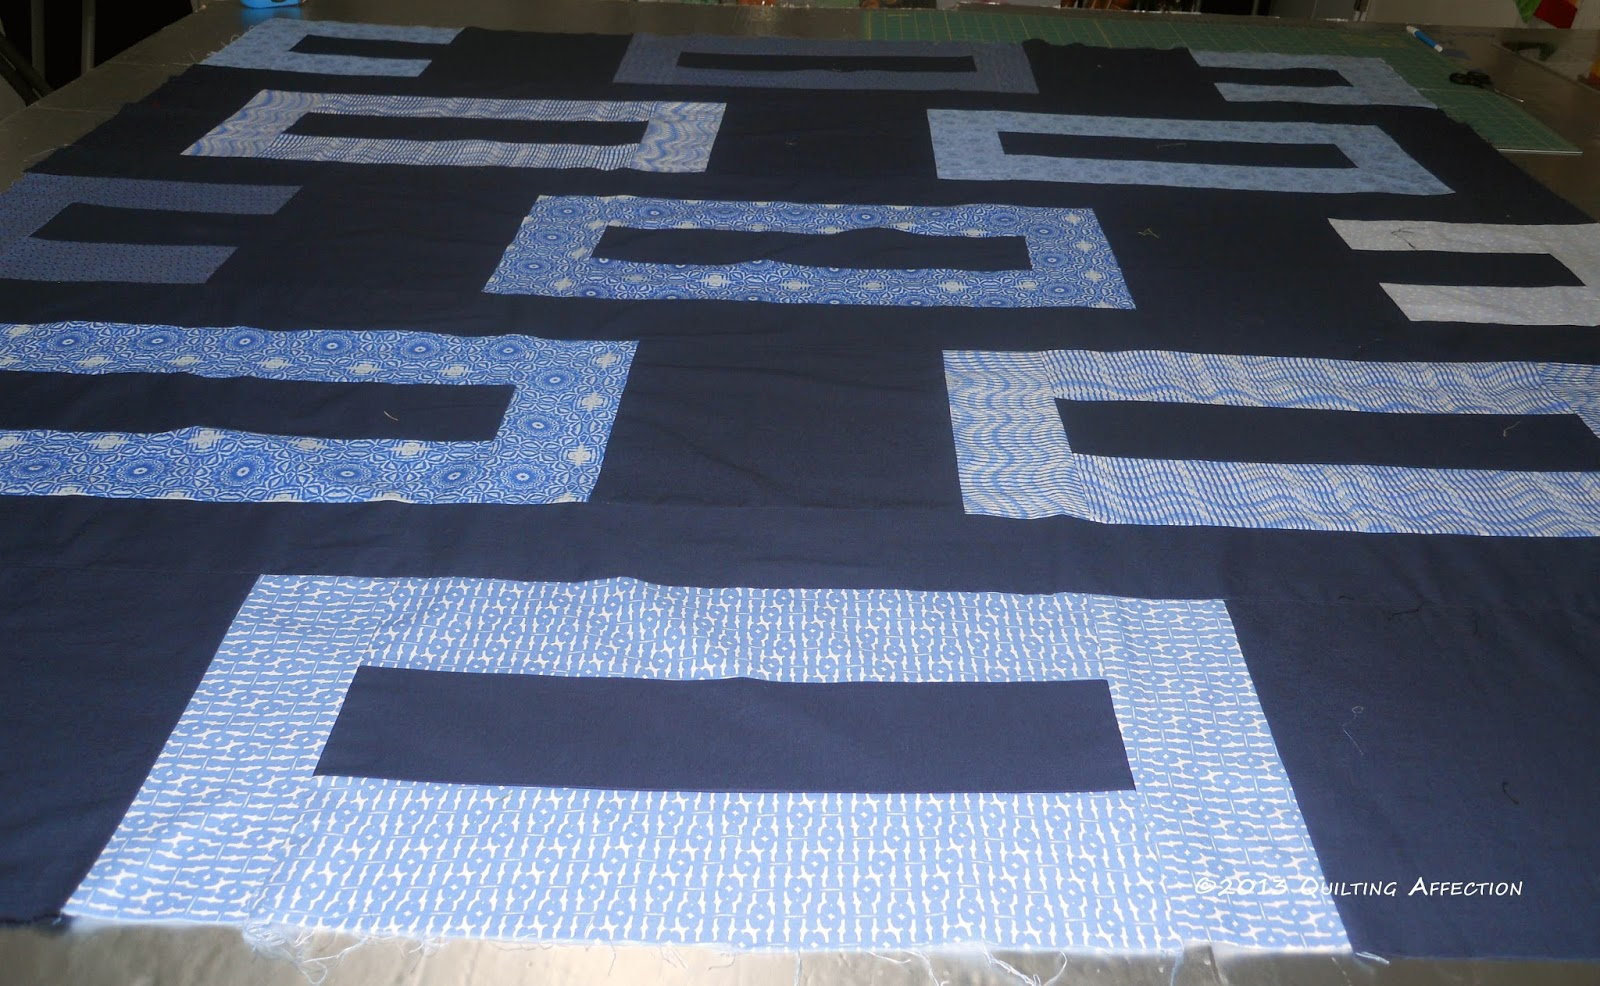 Quilting Affection Designs: Modern Quilt on the Longarm!